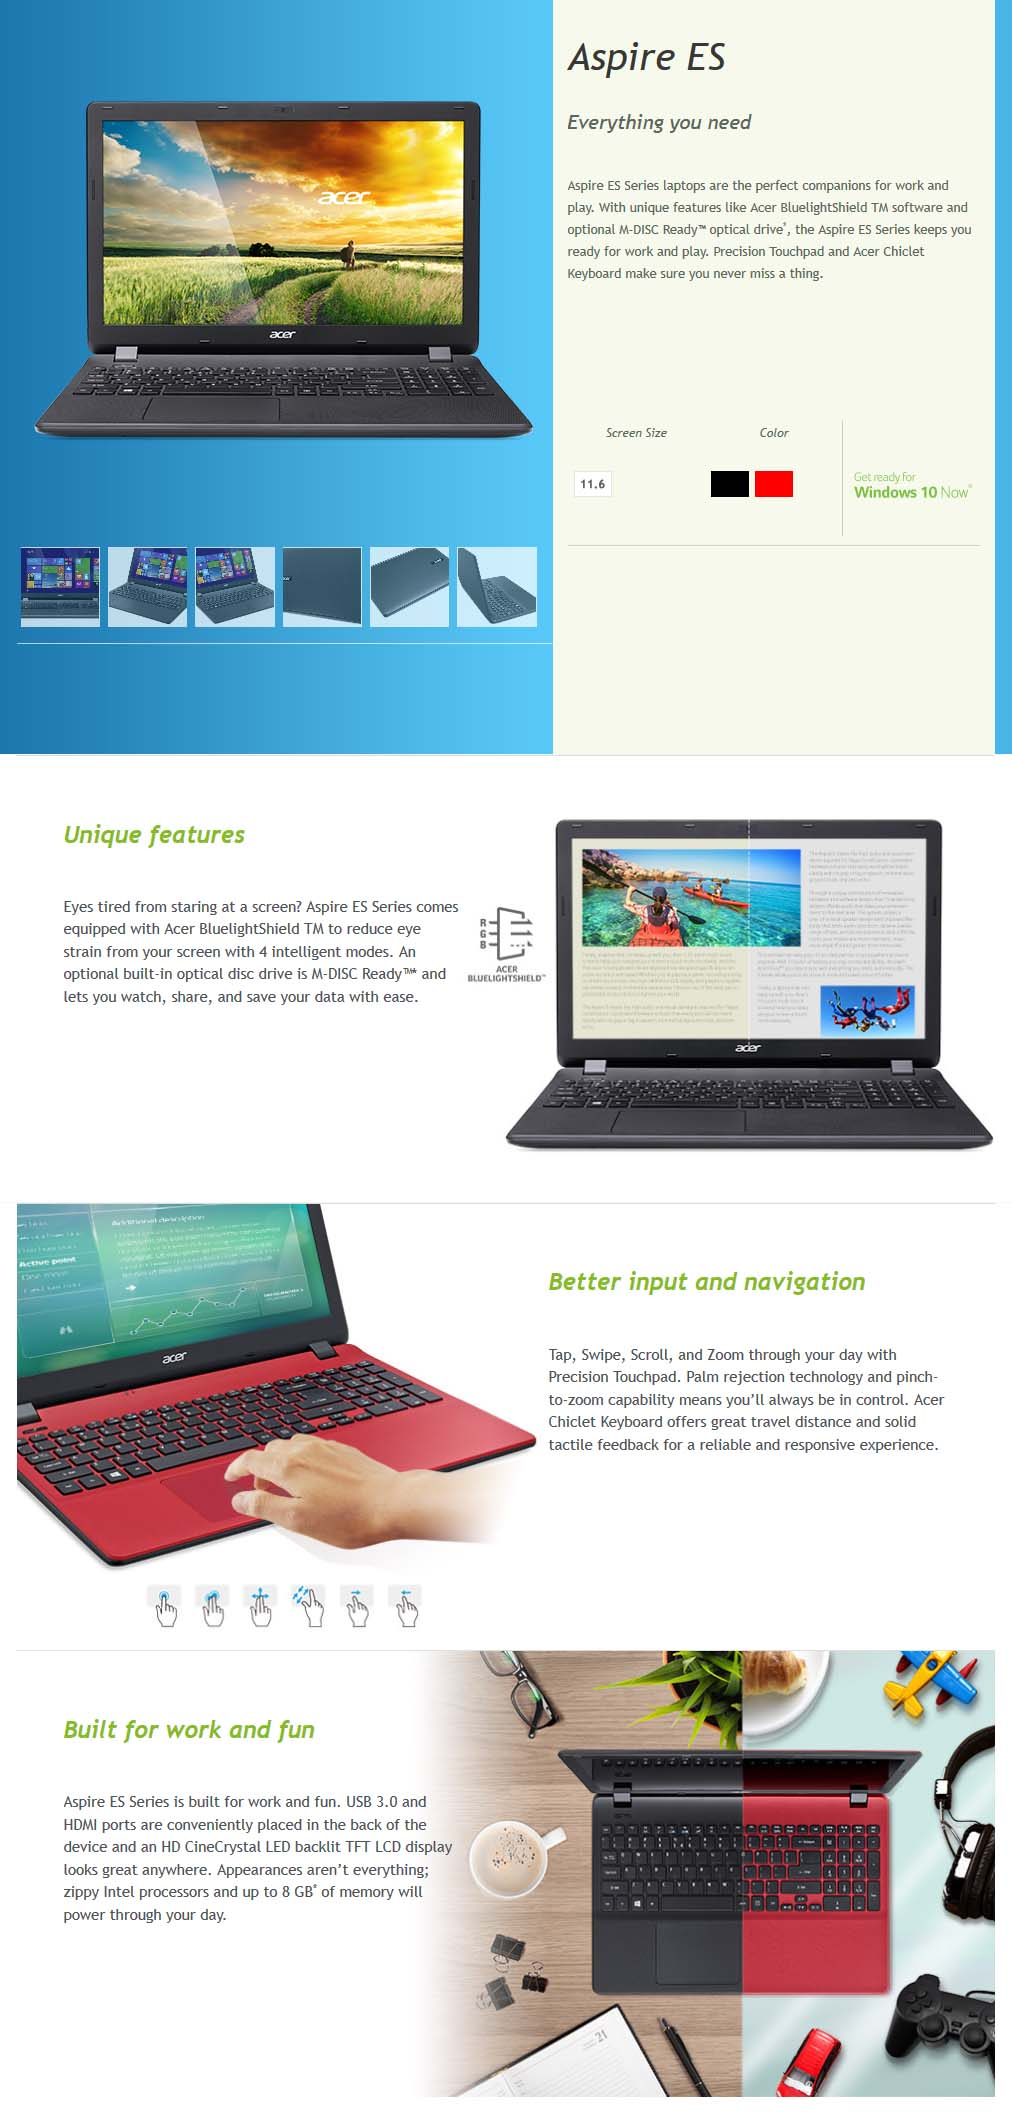 Acer Aspire Es1 131 C1ys Red Intel End 1 27 2019 1220 Pm Product Details Of Celeron N305016208ghz 2gb 500gb Hdd Chipset 116 W10